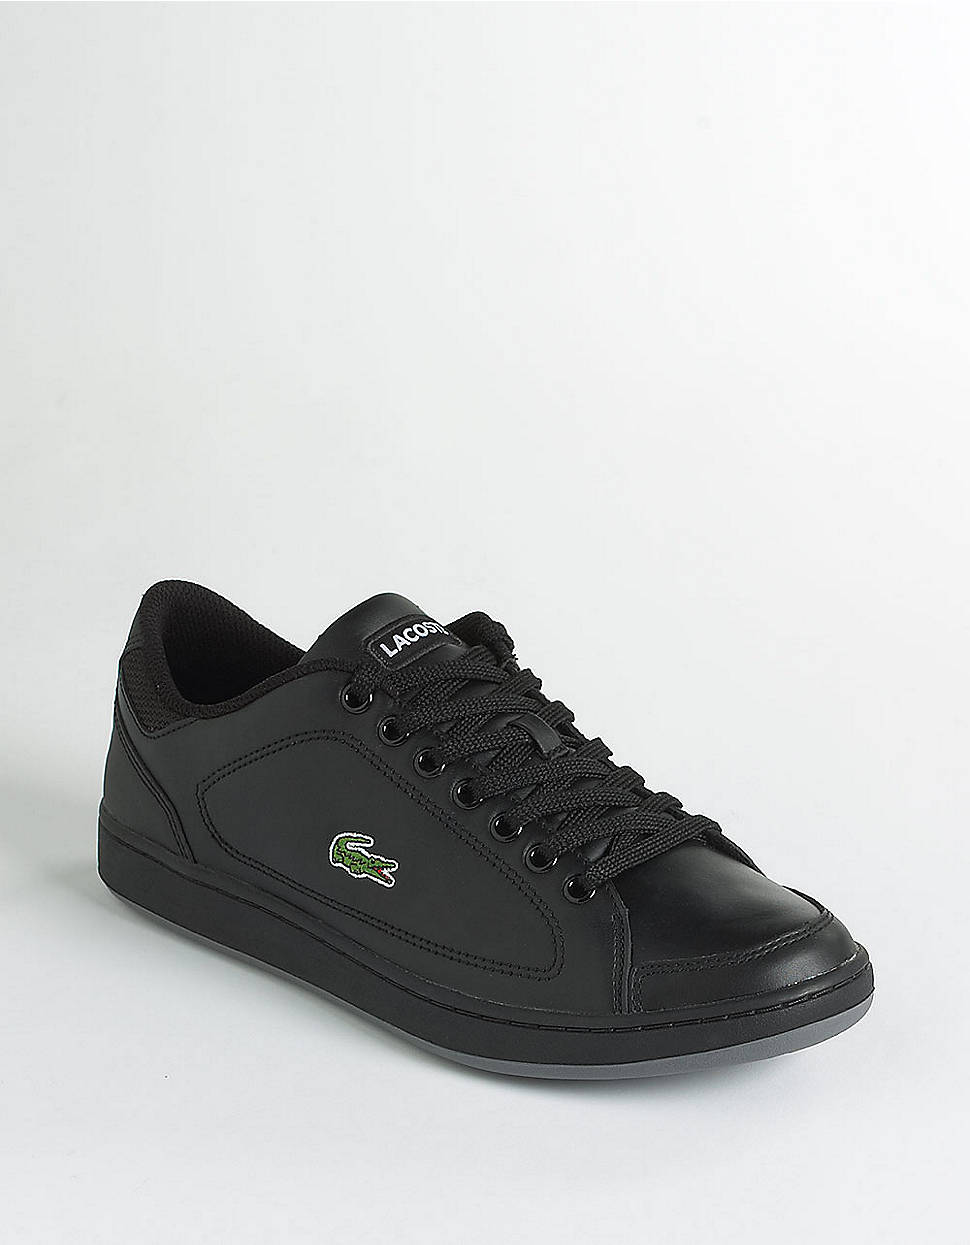 lacoste nistos leather tennis shoes in black for lyst